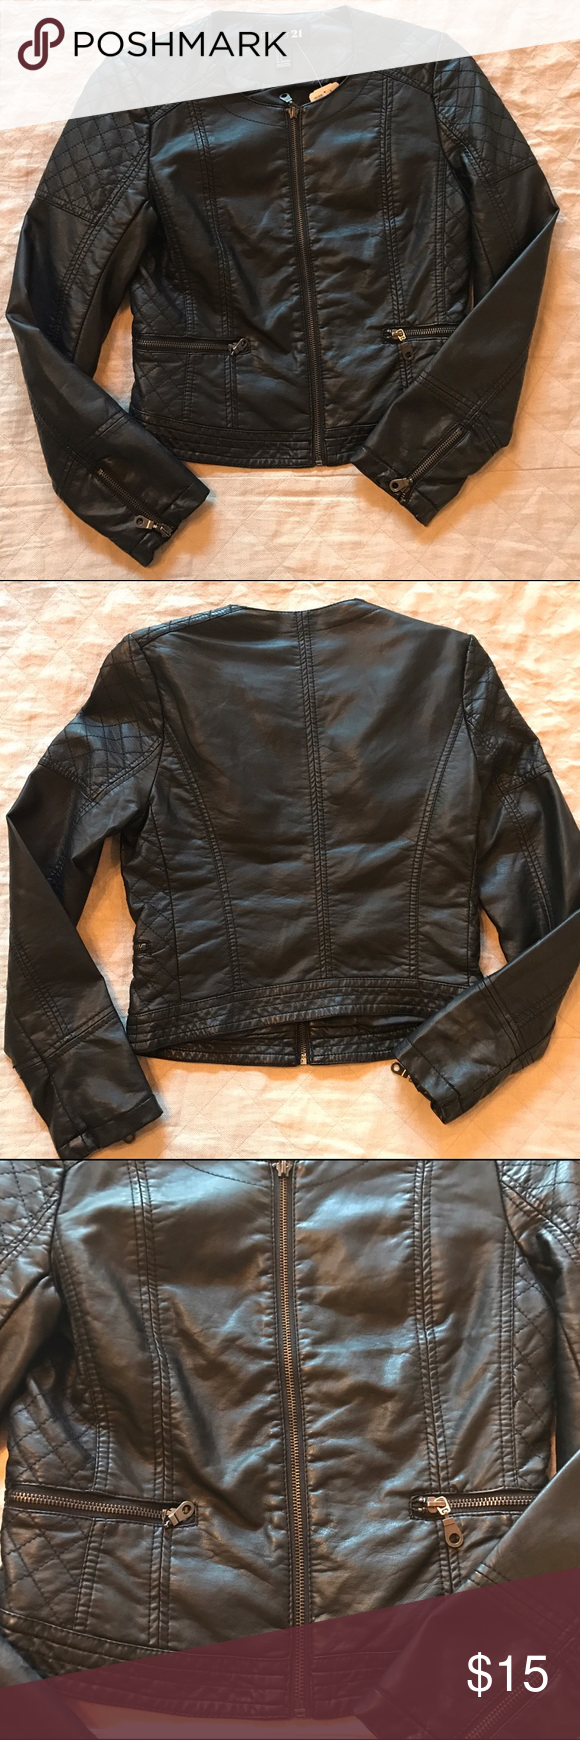 NWT Forever 21 Faux Leather Jacket, small Faux leather